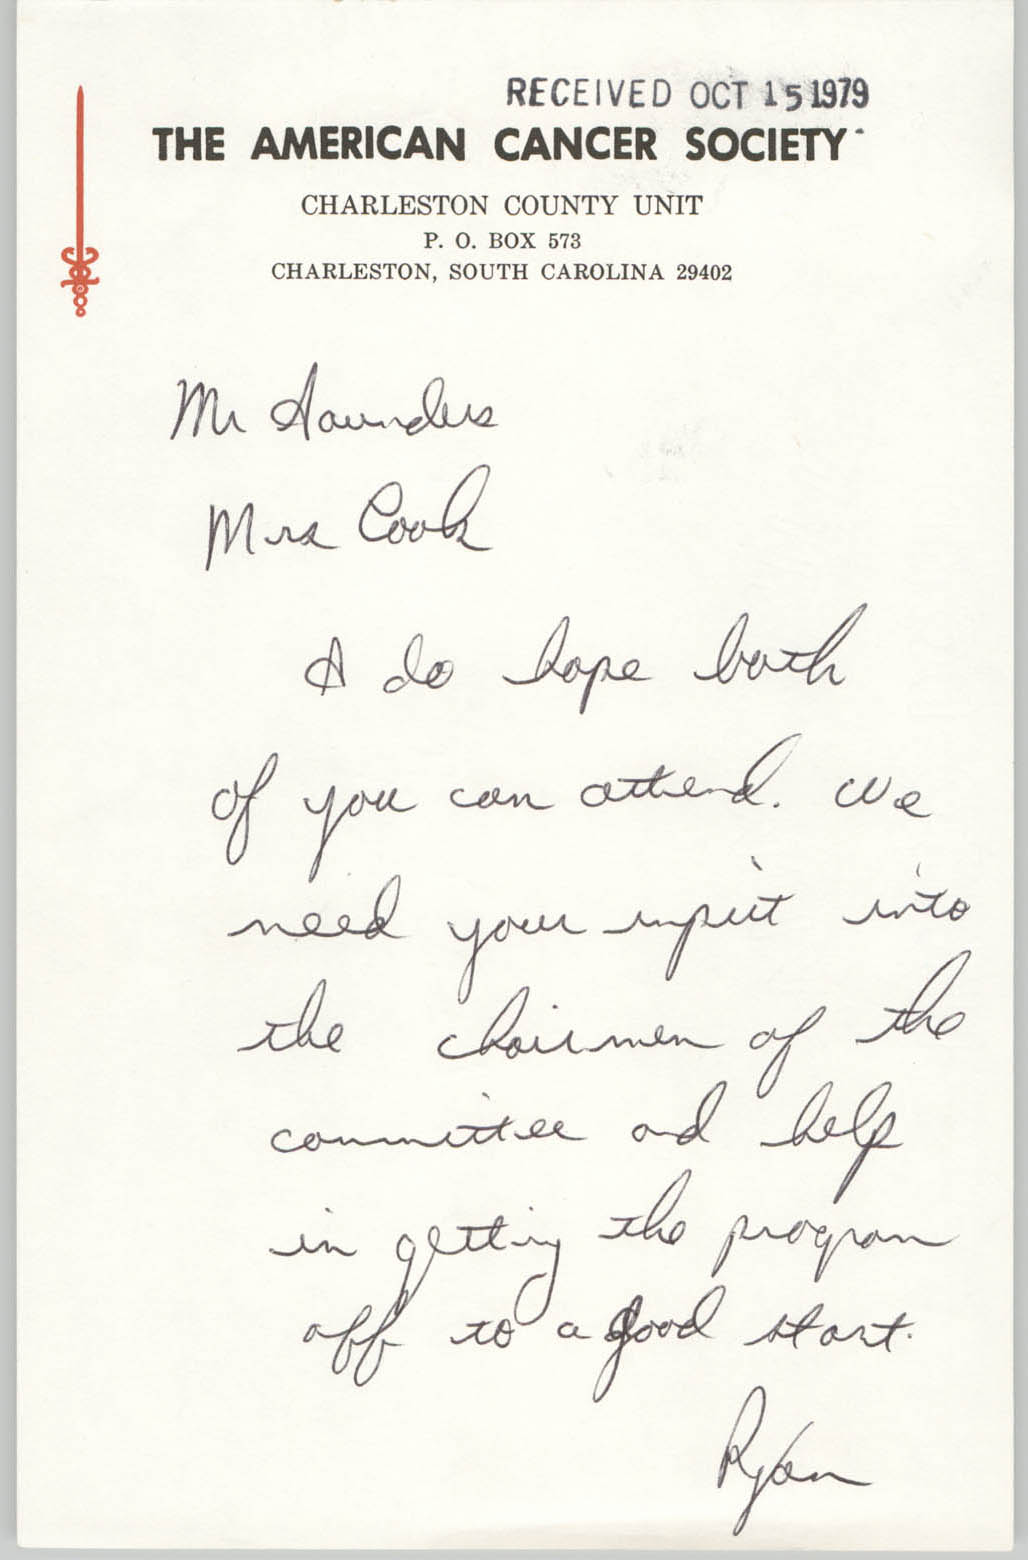 Letter from Ryan Palmer to William Saunders, October 15, 1979